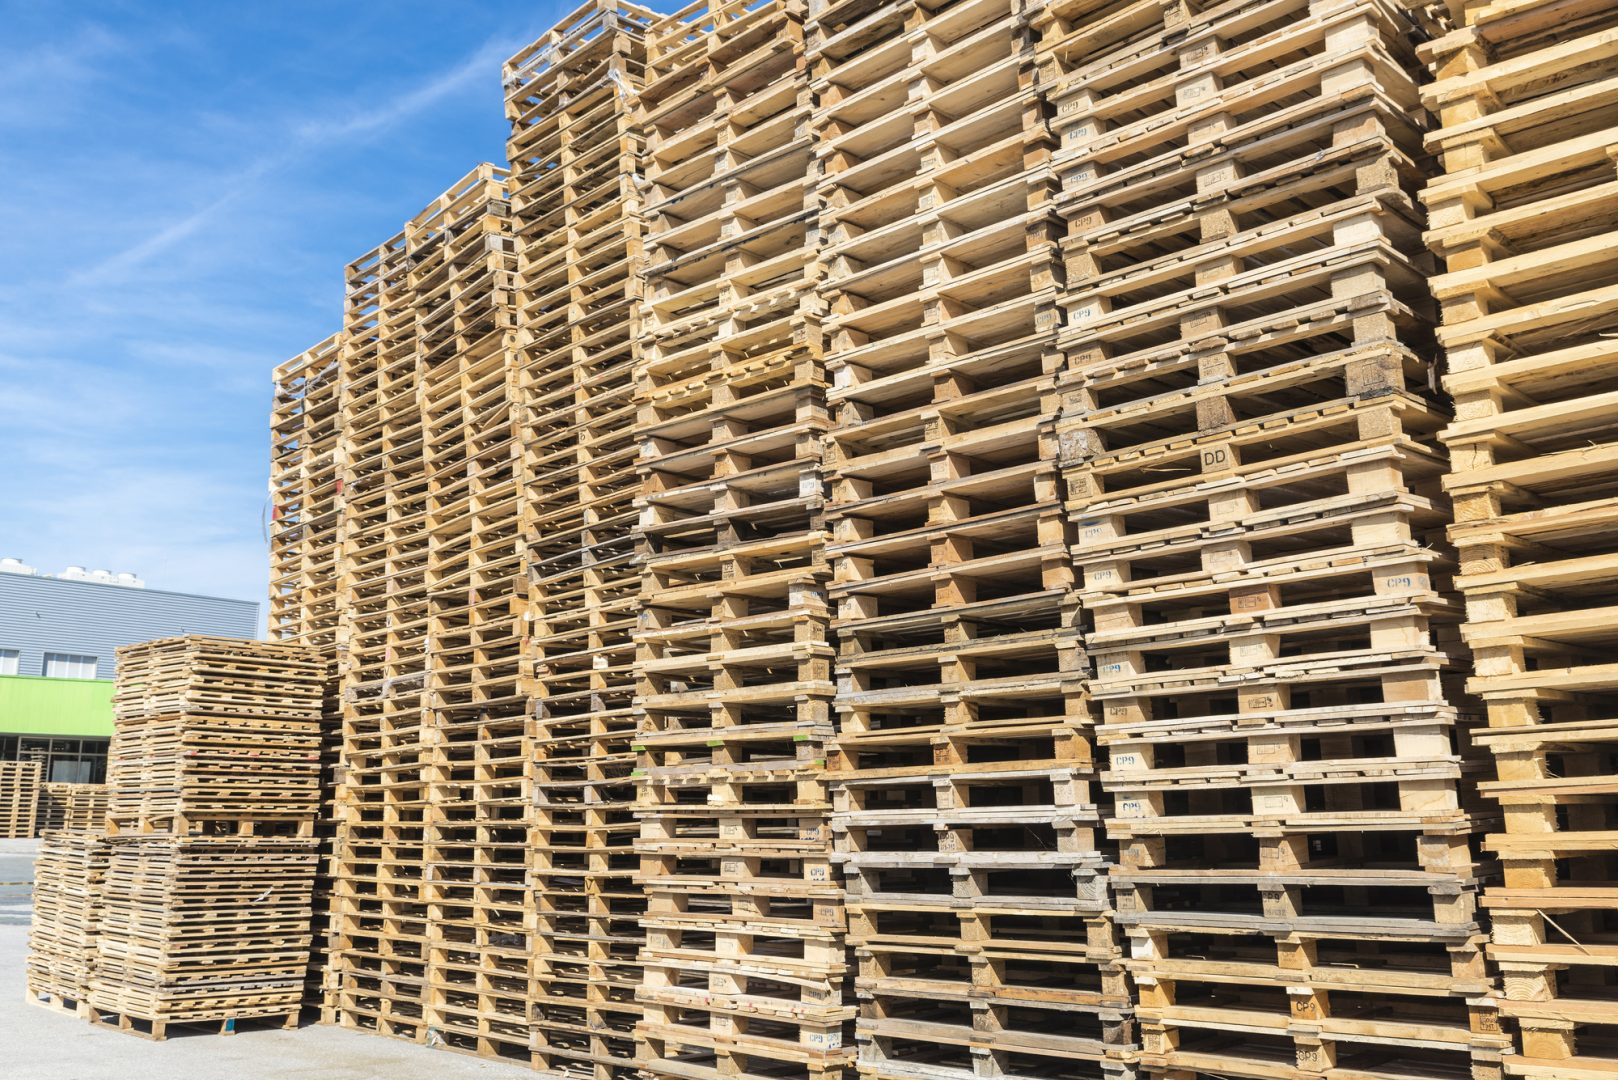 Heap of wooden Pallets